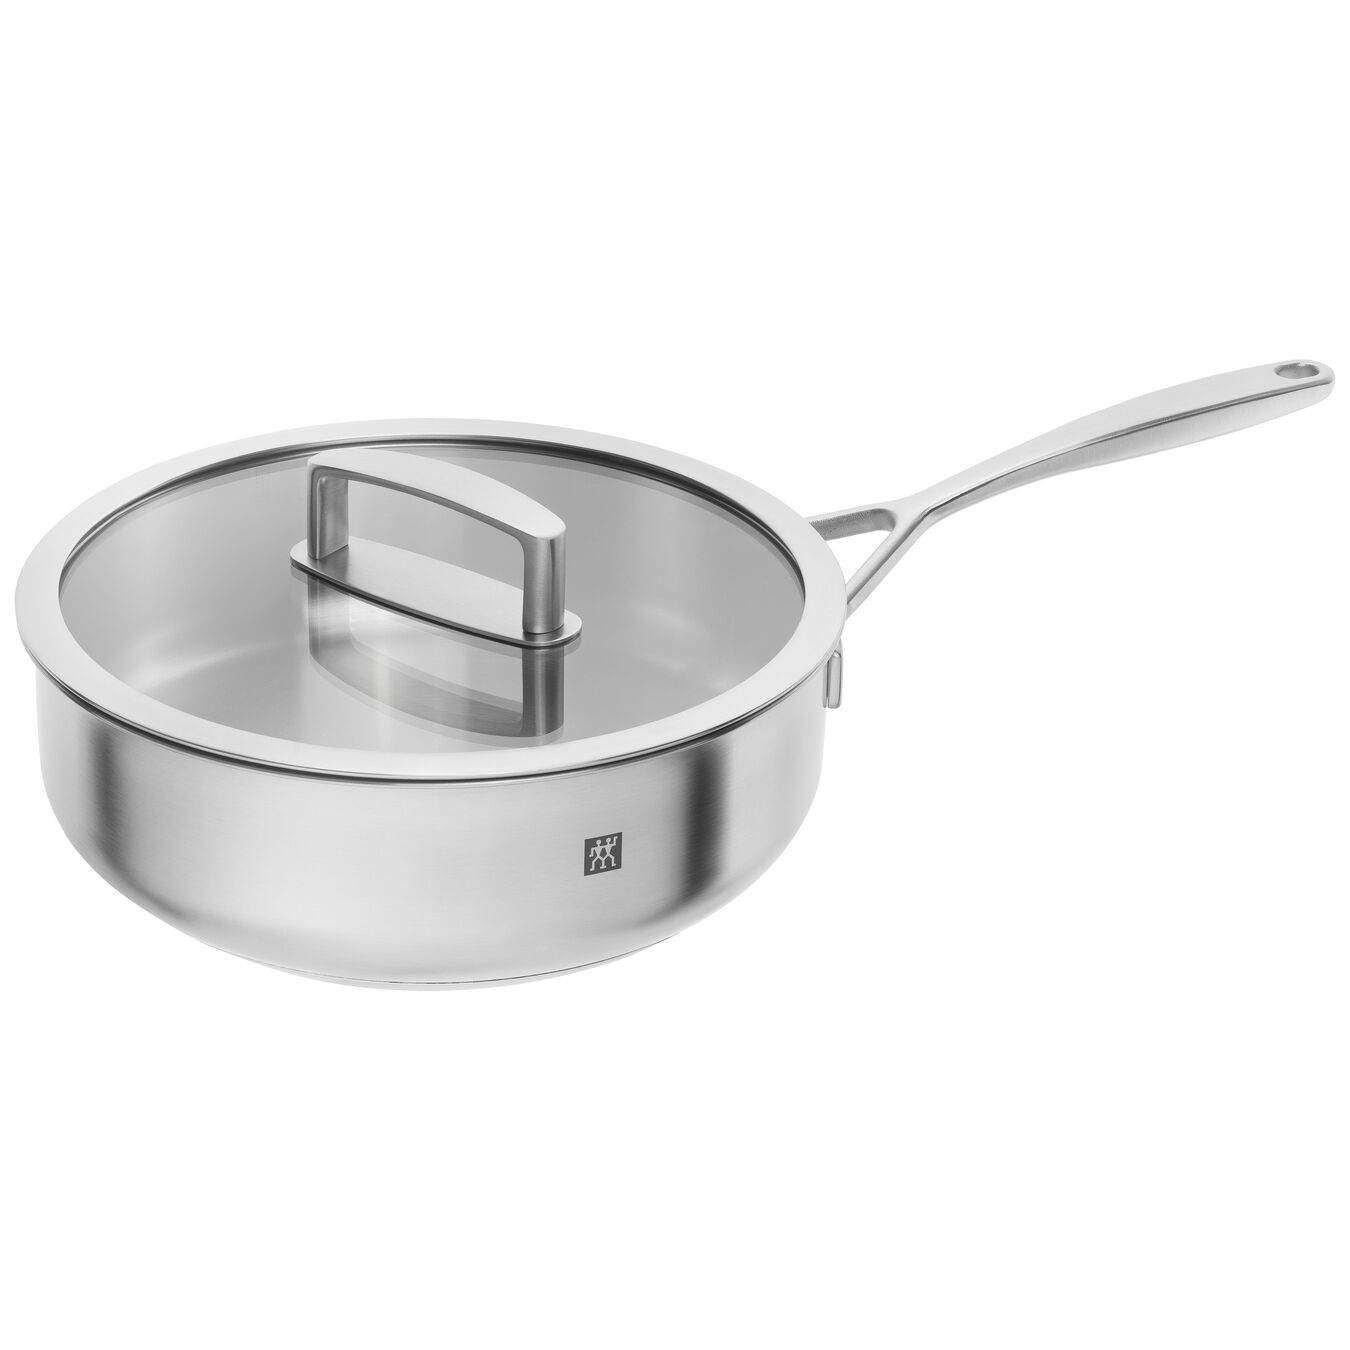 24 cm 18/10 Stainless Steel Saute pan,,large 1